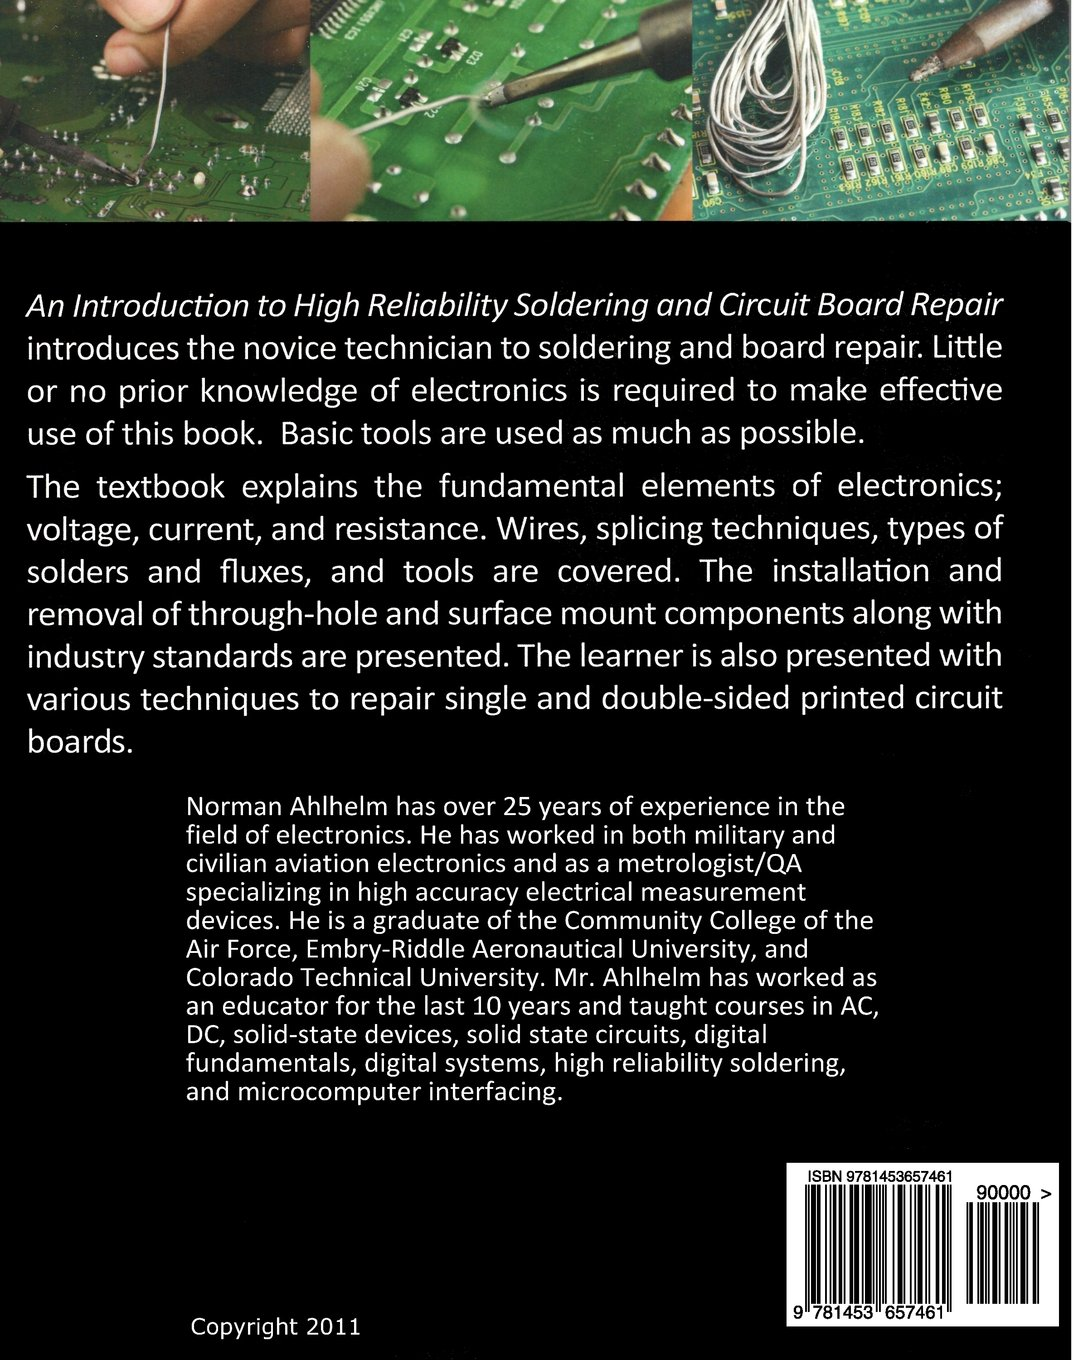 An Introduction To High Reliability Soldering And Circuit Board Repair Tools N Ahlhelm 9781453657461 Books